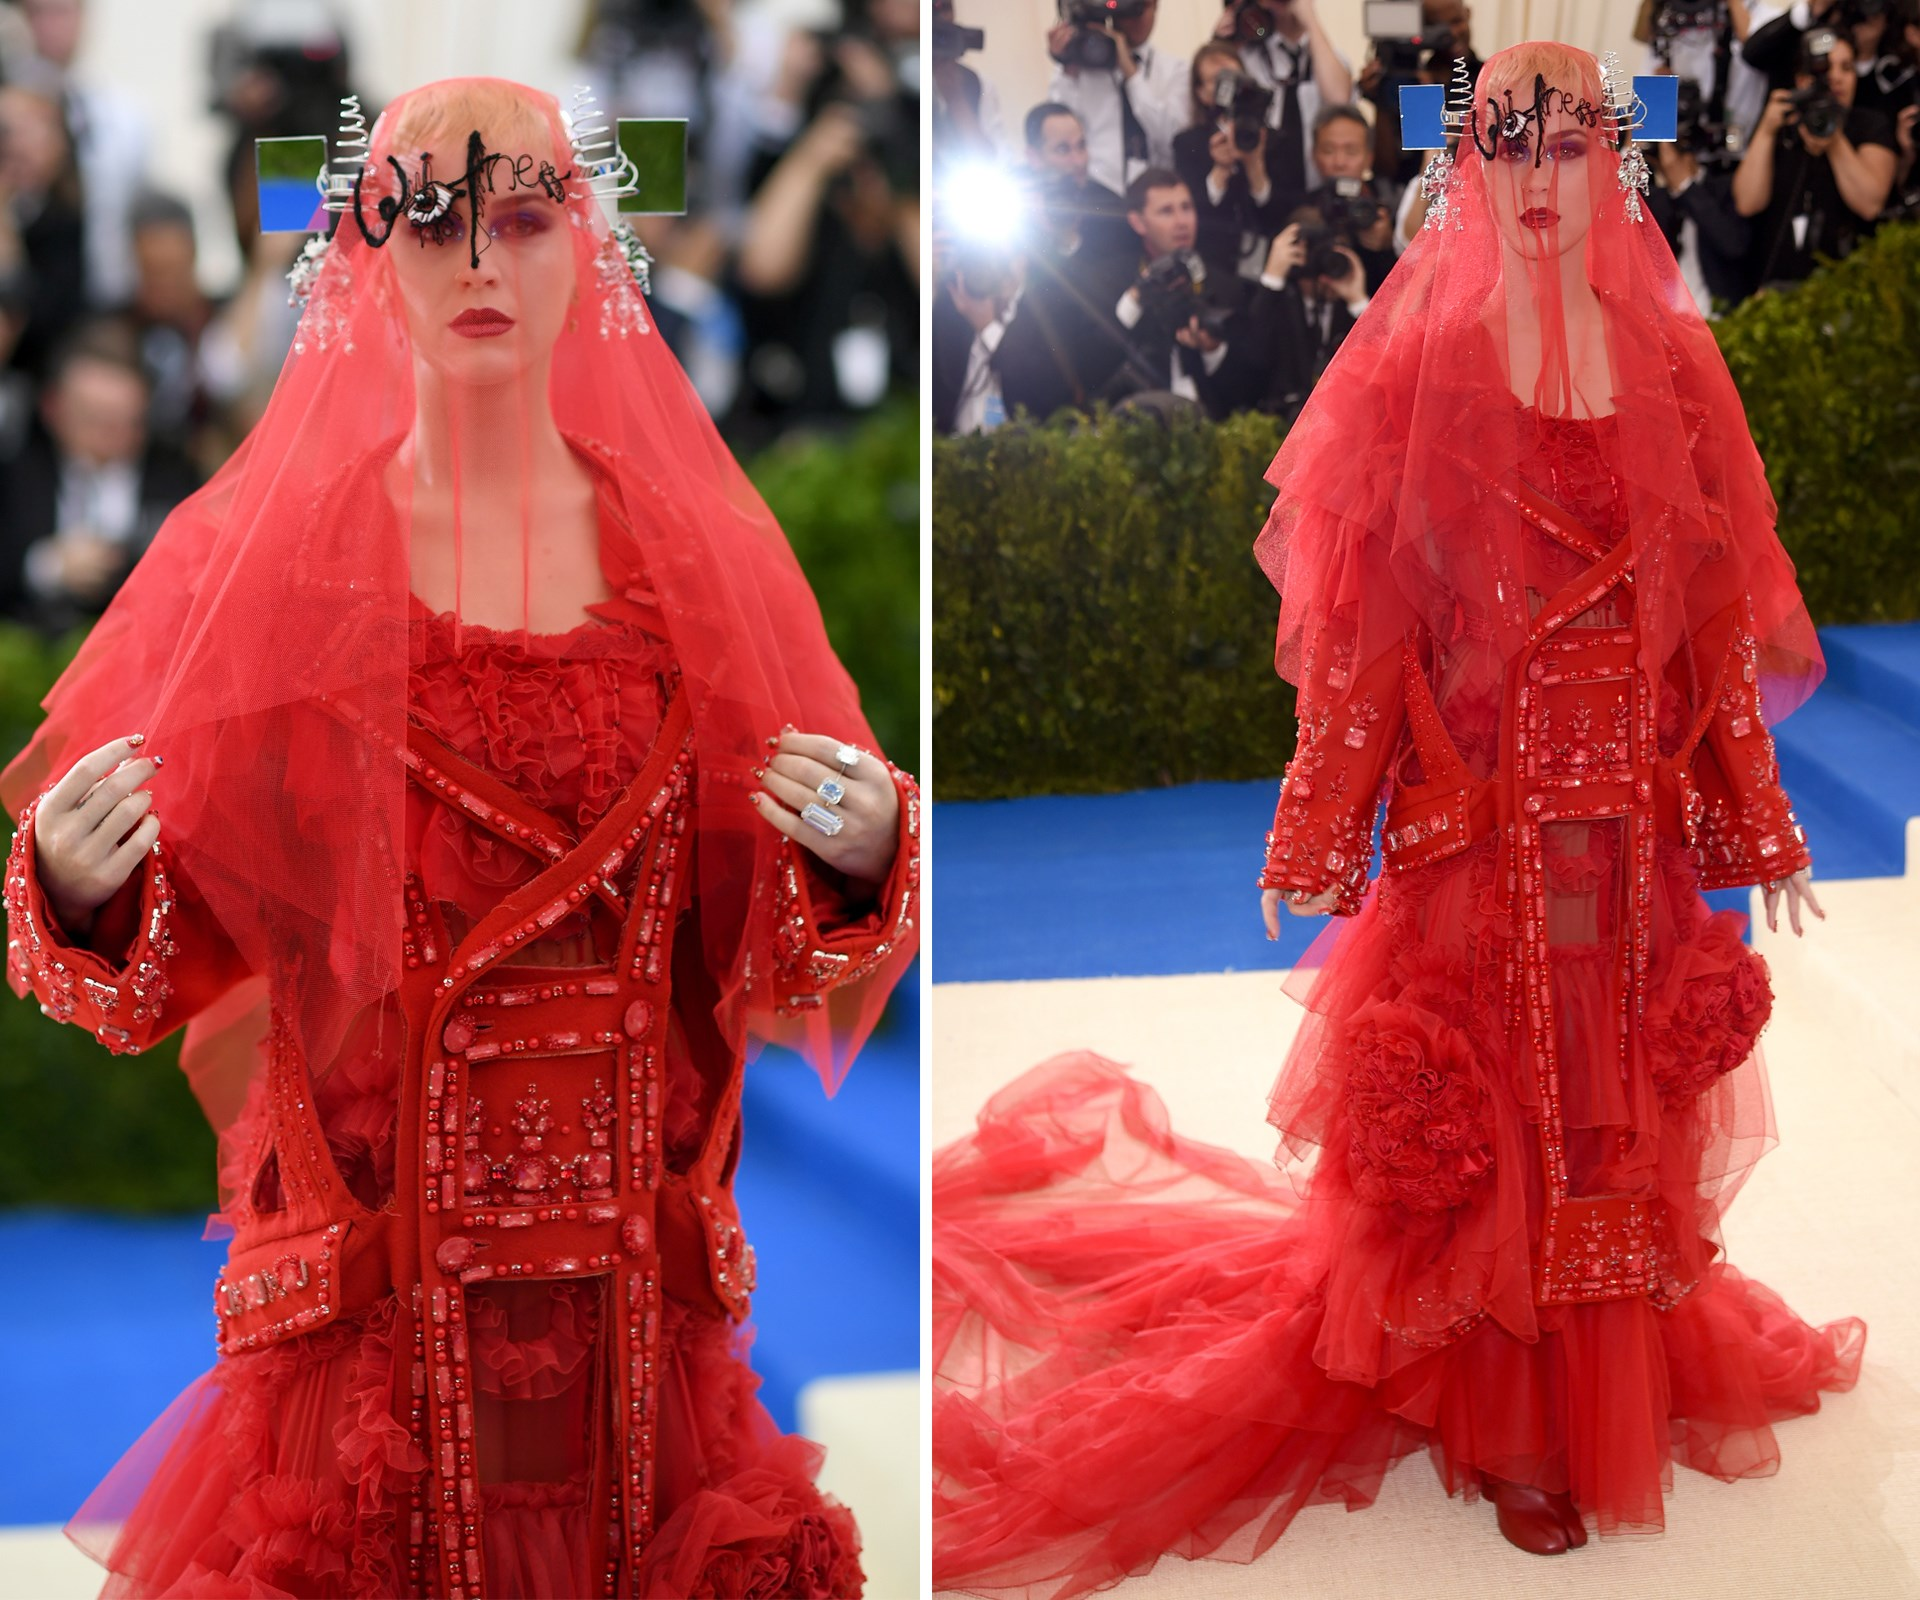 """**Louise Hilsz, fashion and style editor: Katy Perry in custom John Galliano for Maison Margiela.** """"Always pushing the envelope, Katy Perry never goes unnoticed."""""""